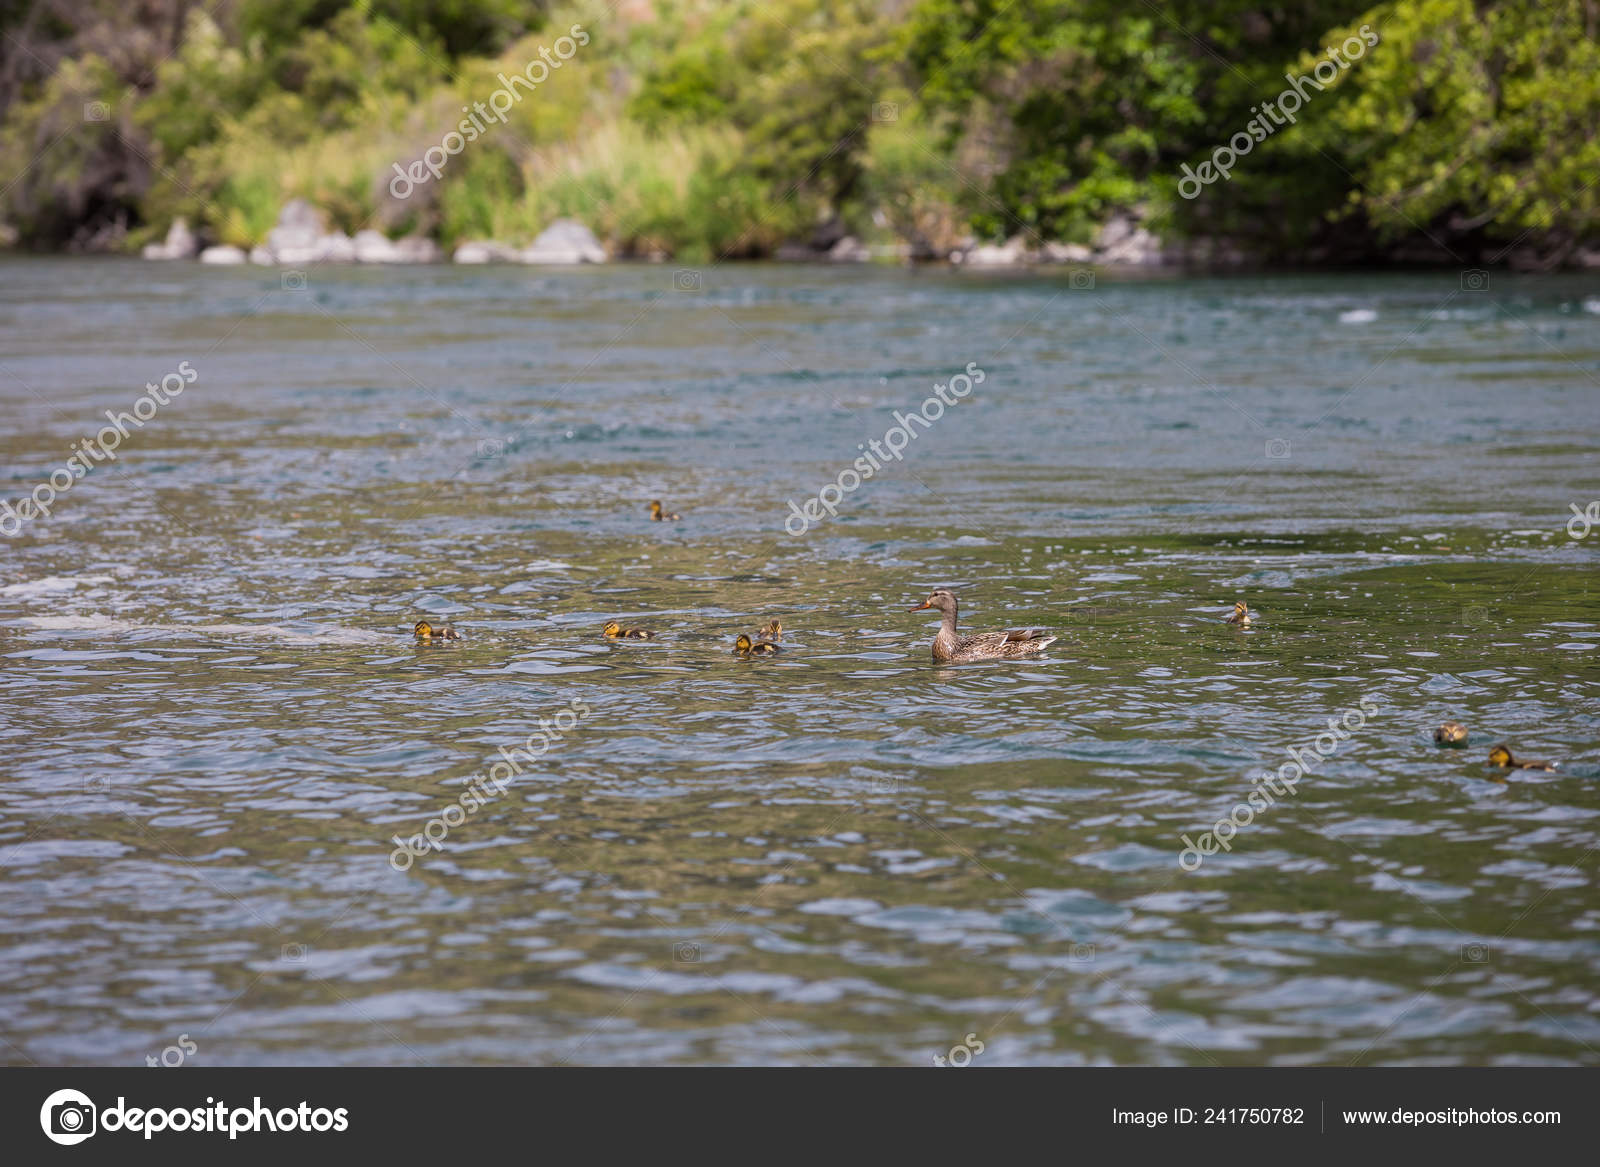 Lower Deschutes River Oregon Fly Fishing Trip in May — Stock Photo